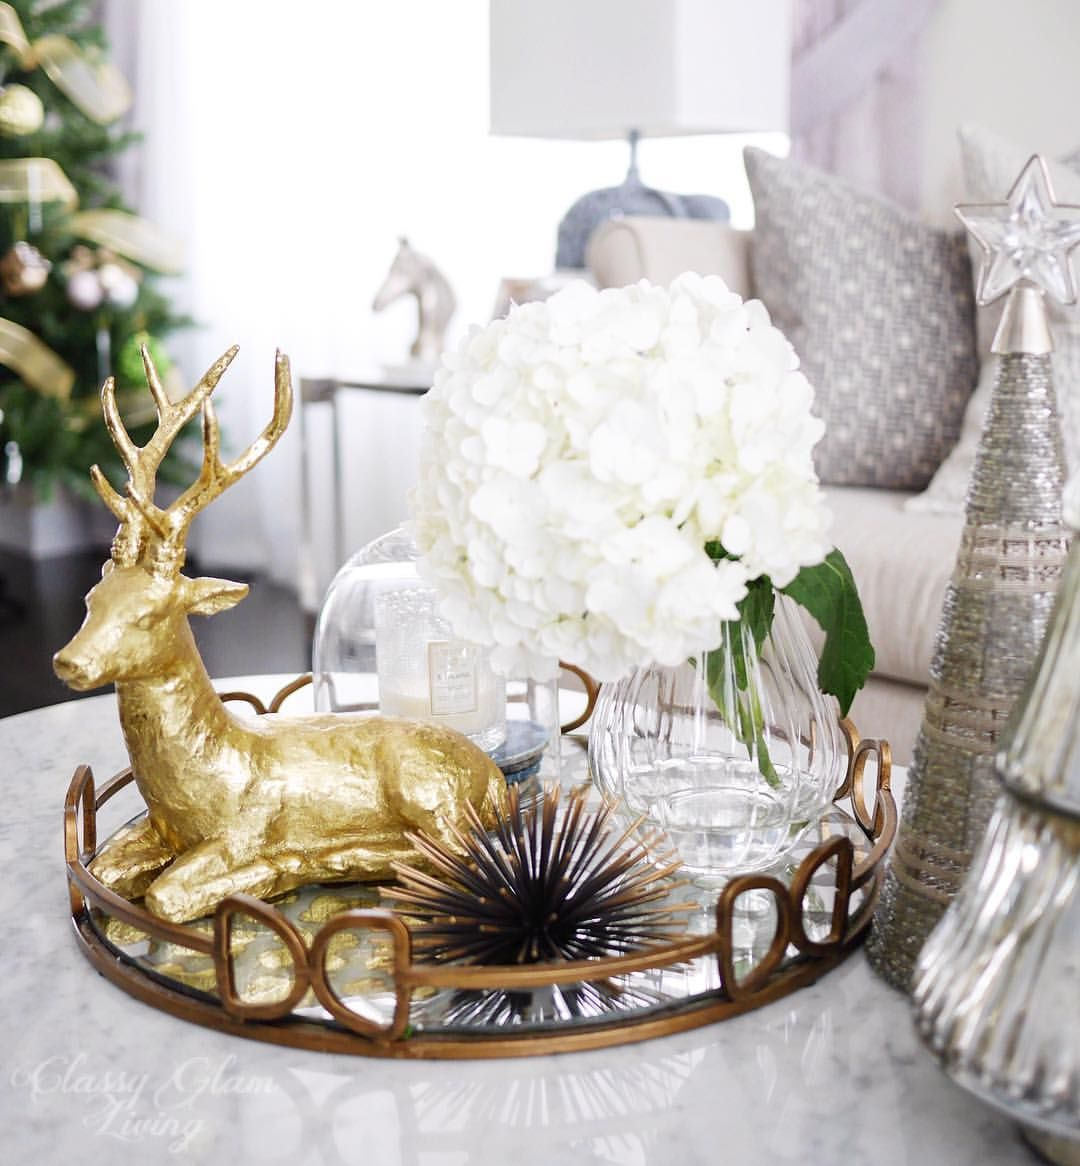 Christmas Tray Styling Coffee Table Living Room Family Room Gold Rei Christmas Coffee Table Decor Coffee Table Decor Tray Christmas Decorations Living Room